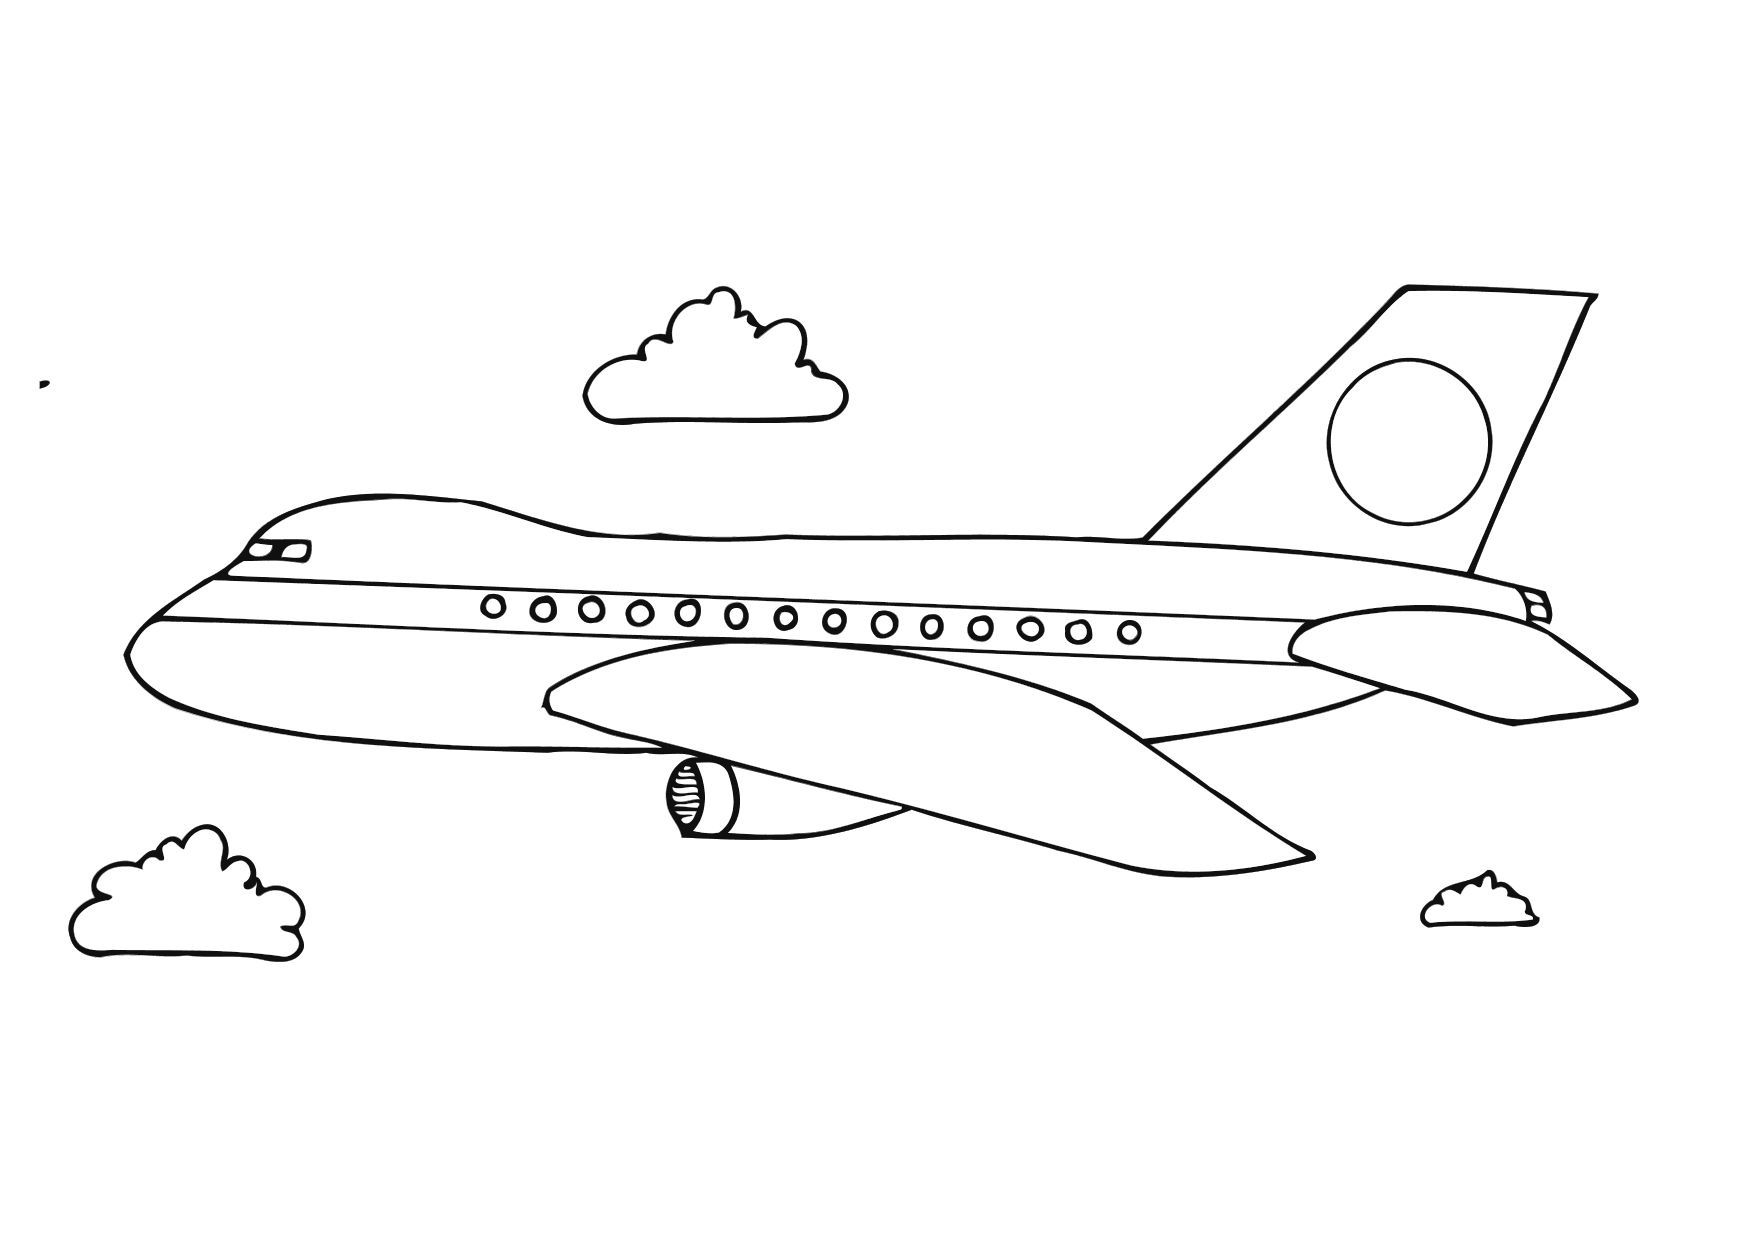 coloring pages of planes - photo#15